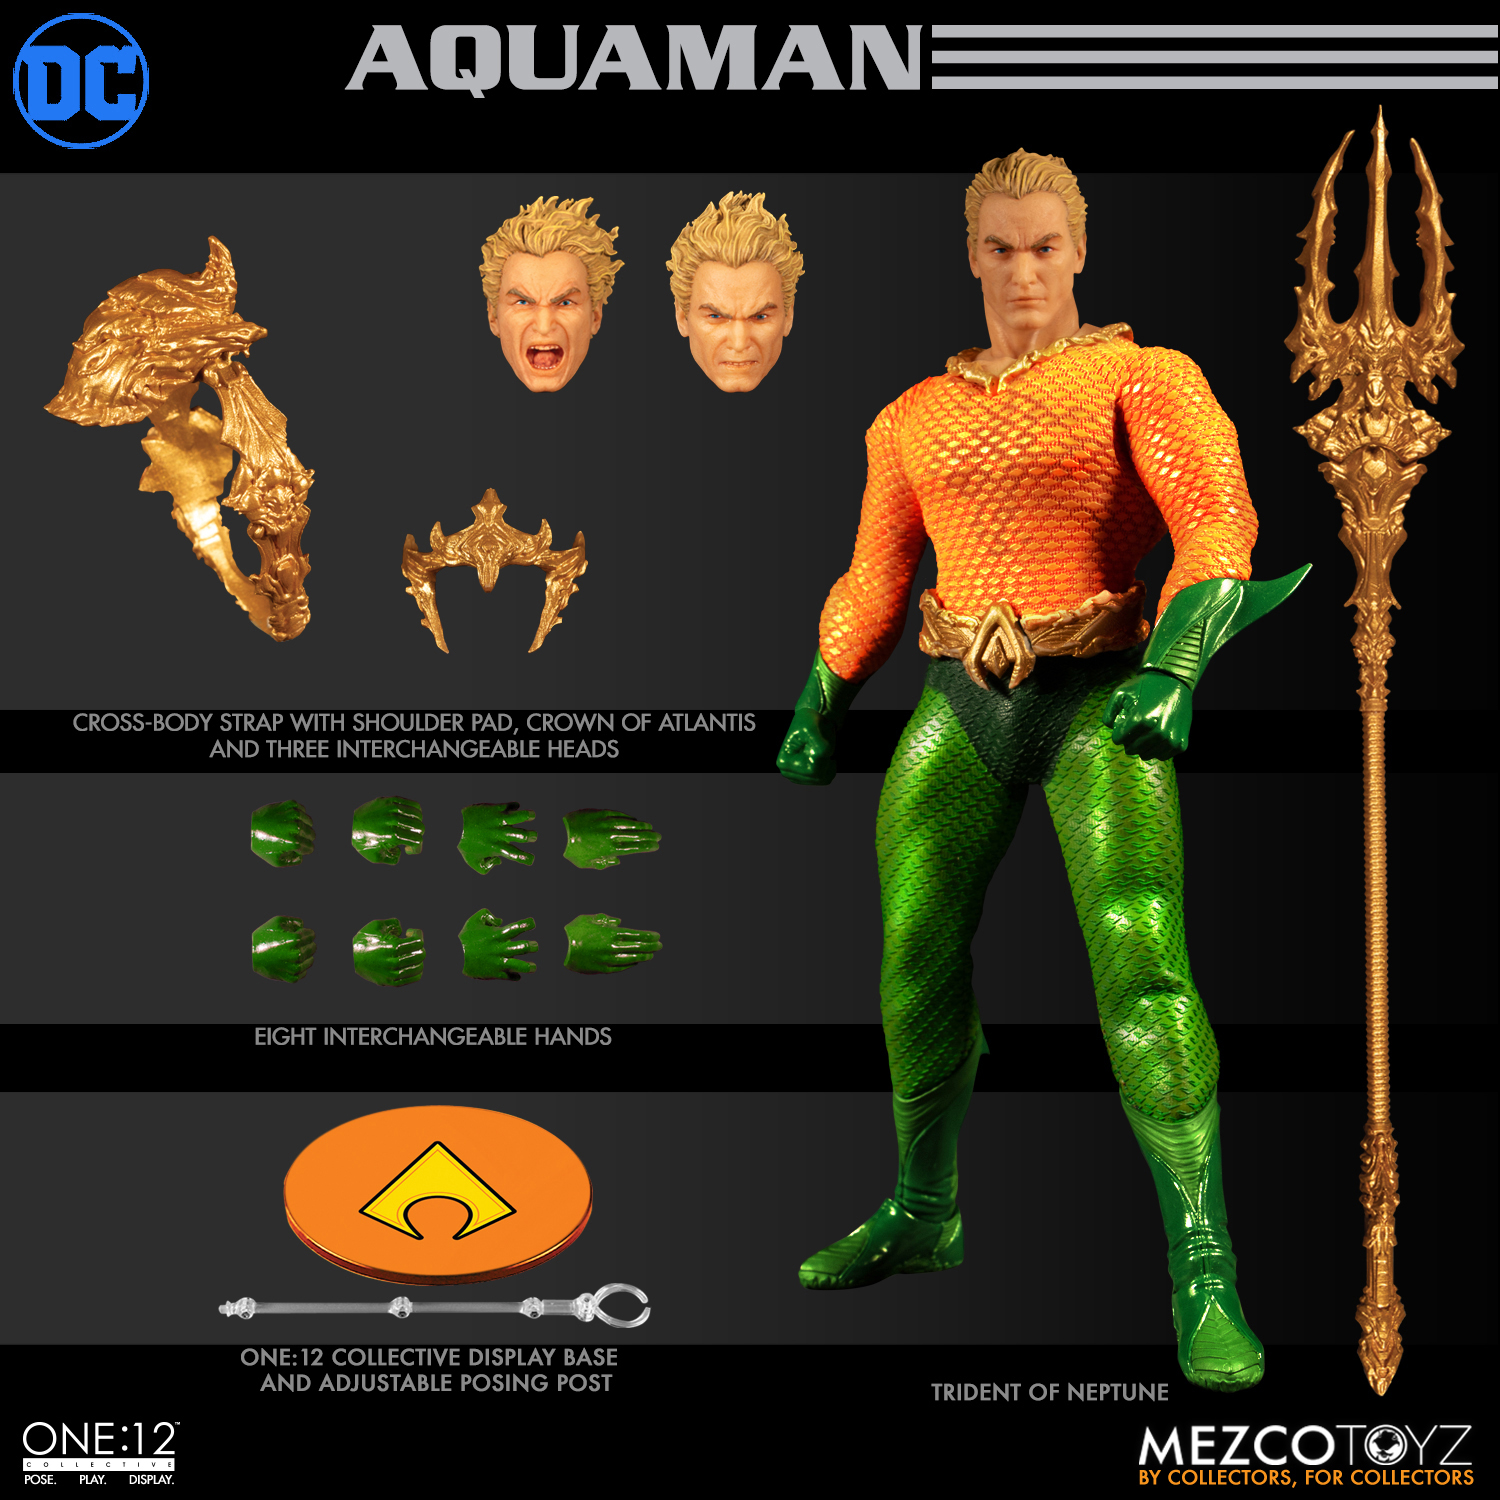 ONE-12 COLLECTIVE DC AQUAMAN AF